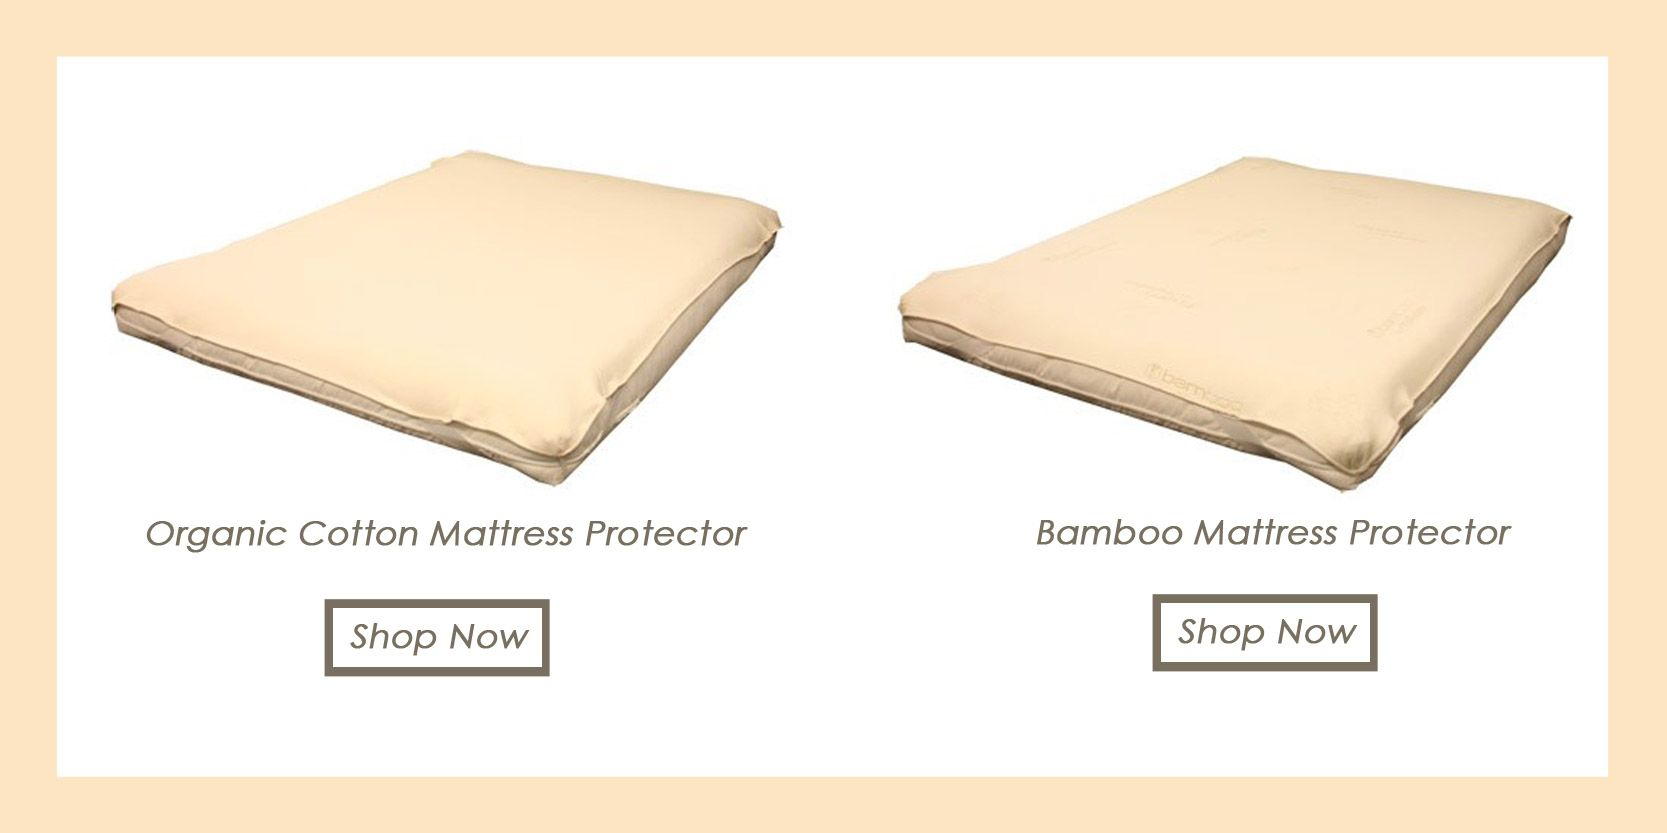 Dorm Bedding Mattress Protectors That Are Organic And Affordable The Futon S Is